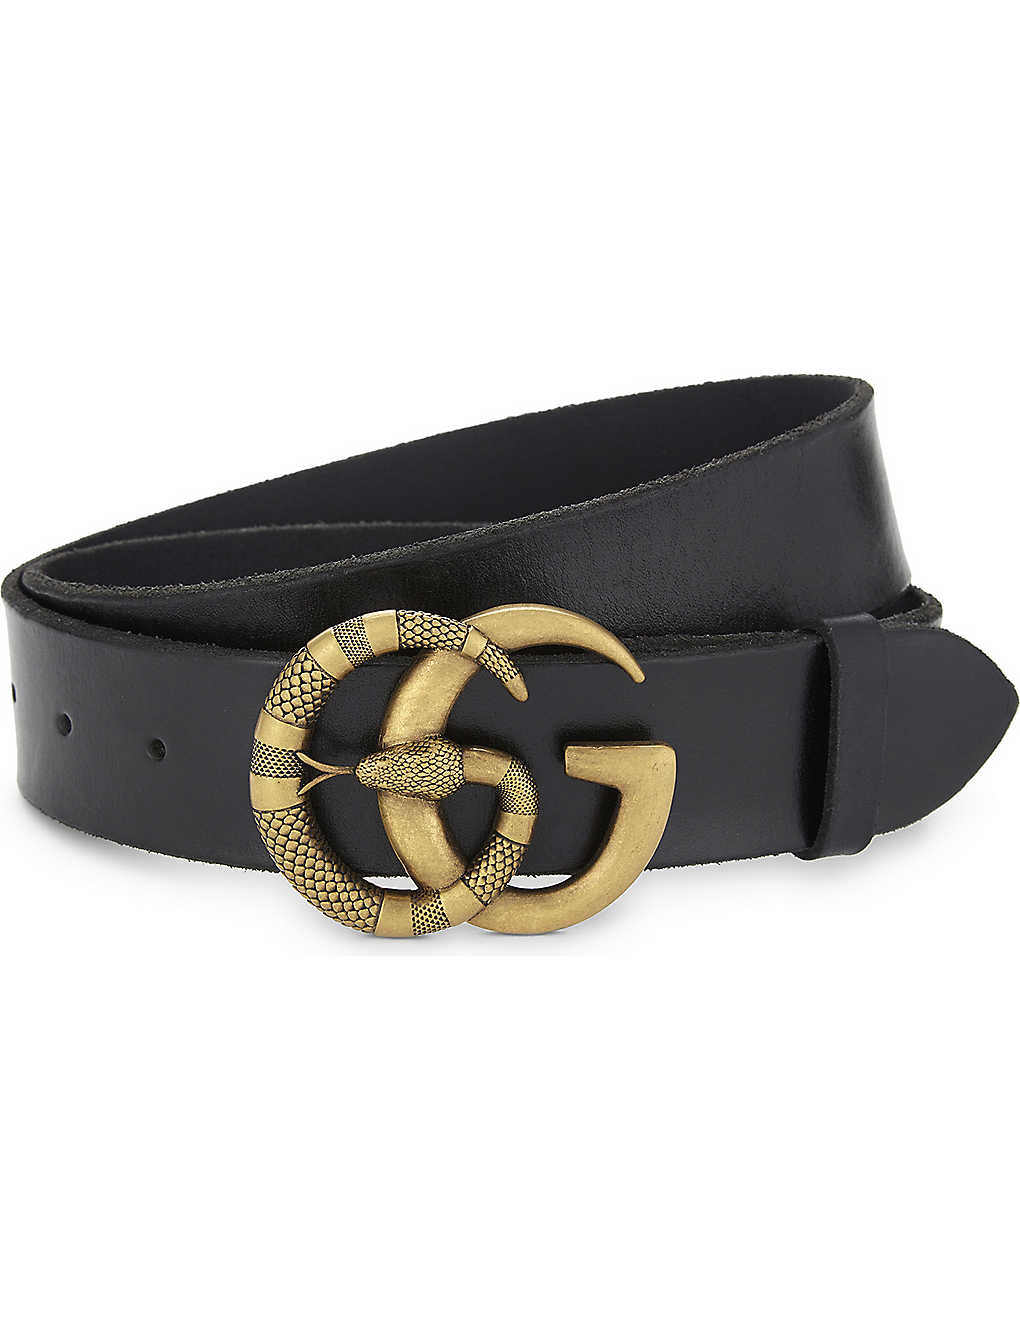 73681490ce6 ... Snake GG buckle leather belt zoom ...